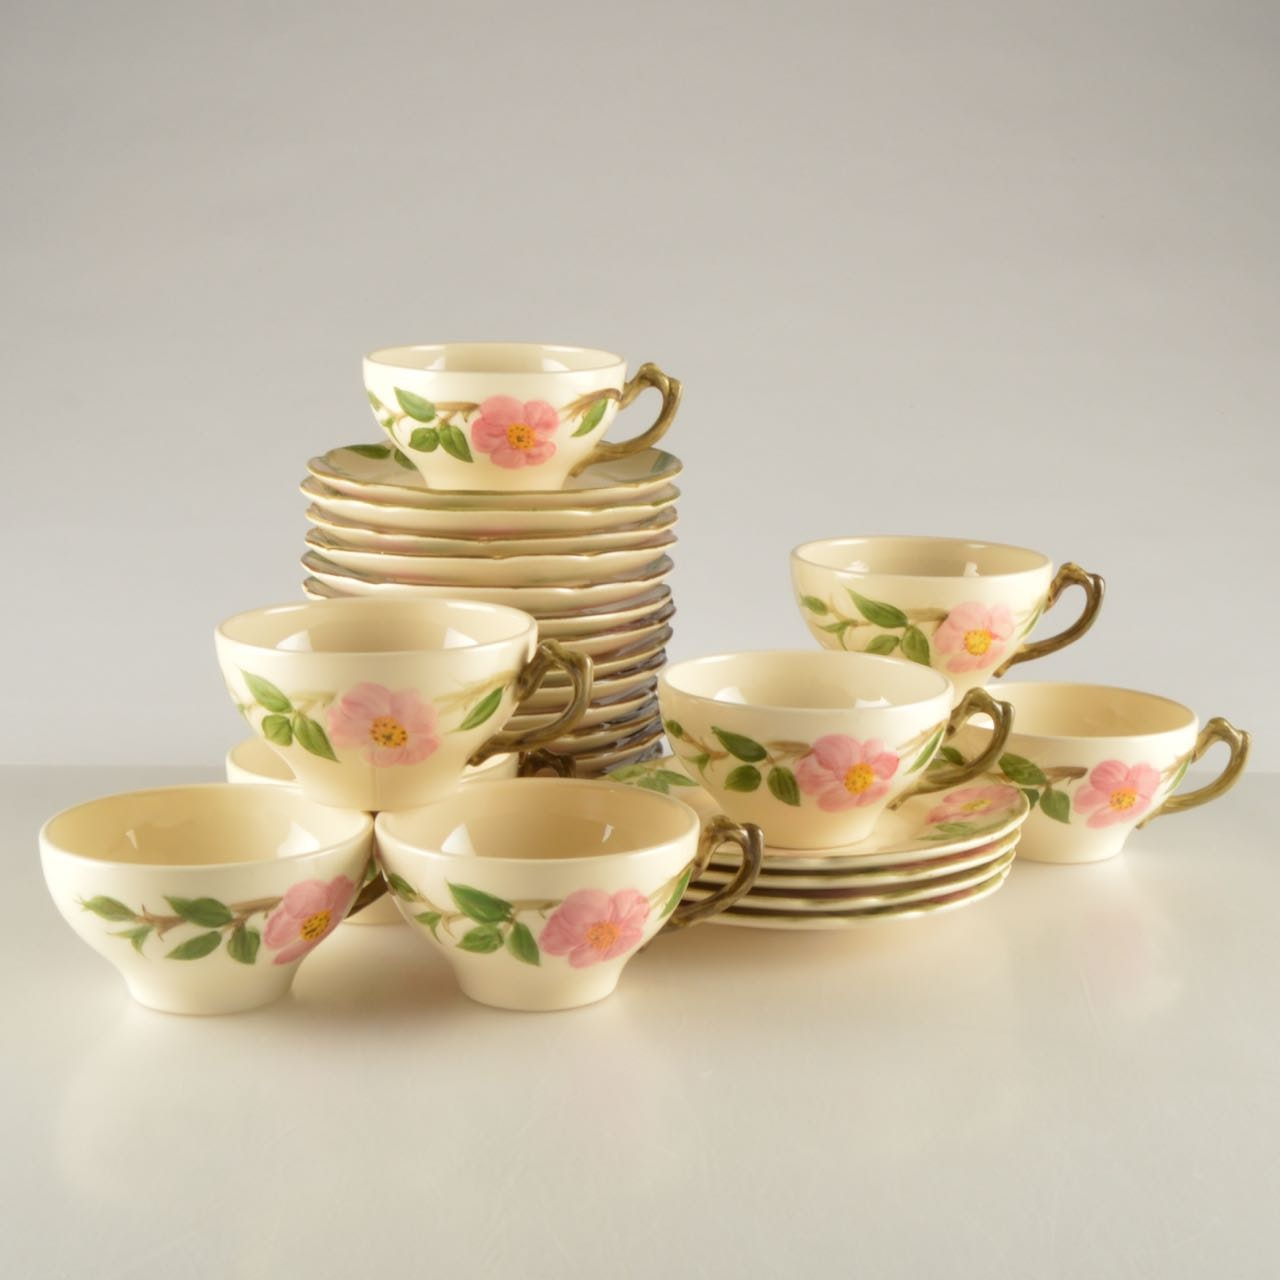 Hand-Painted Franciscan Desert Rose Cups and Saucers